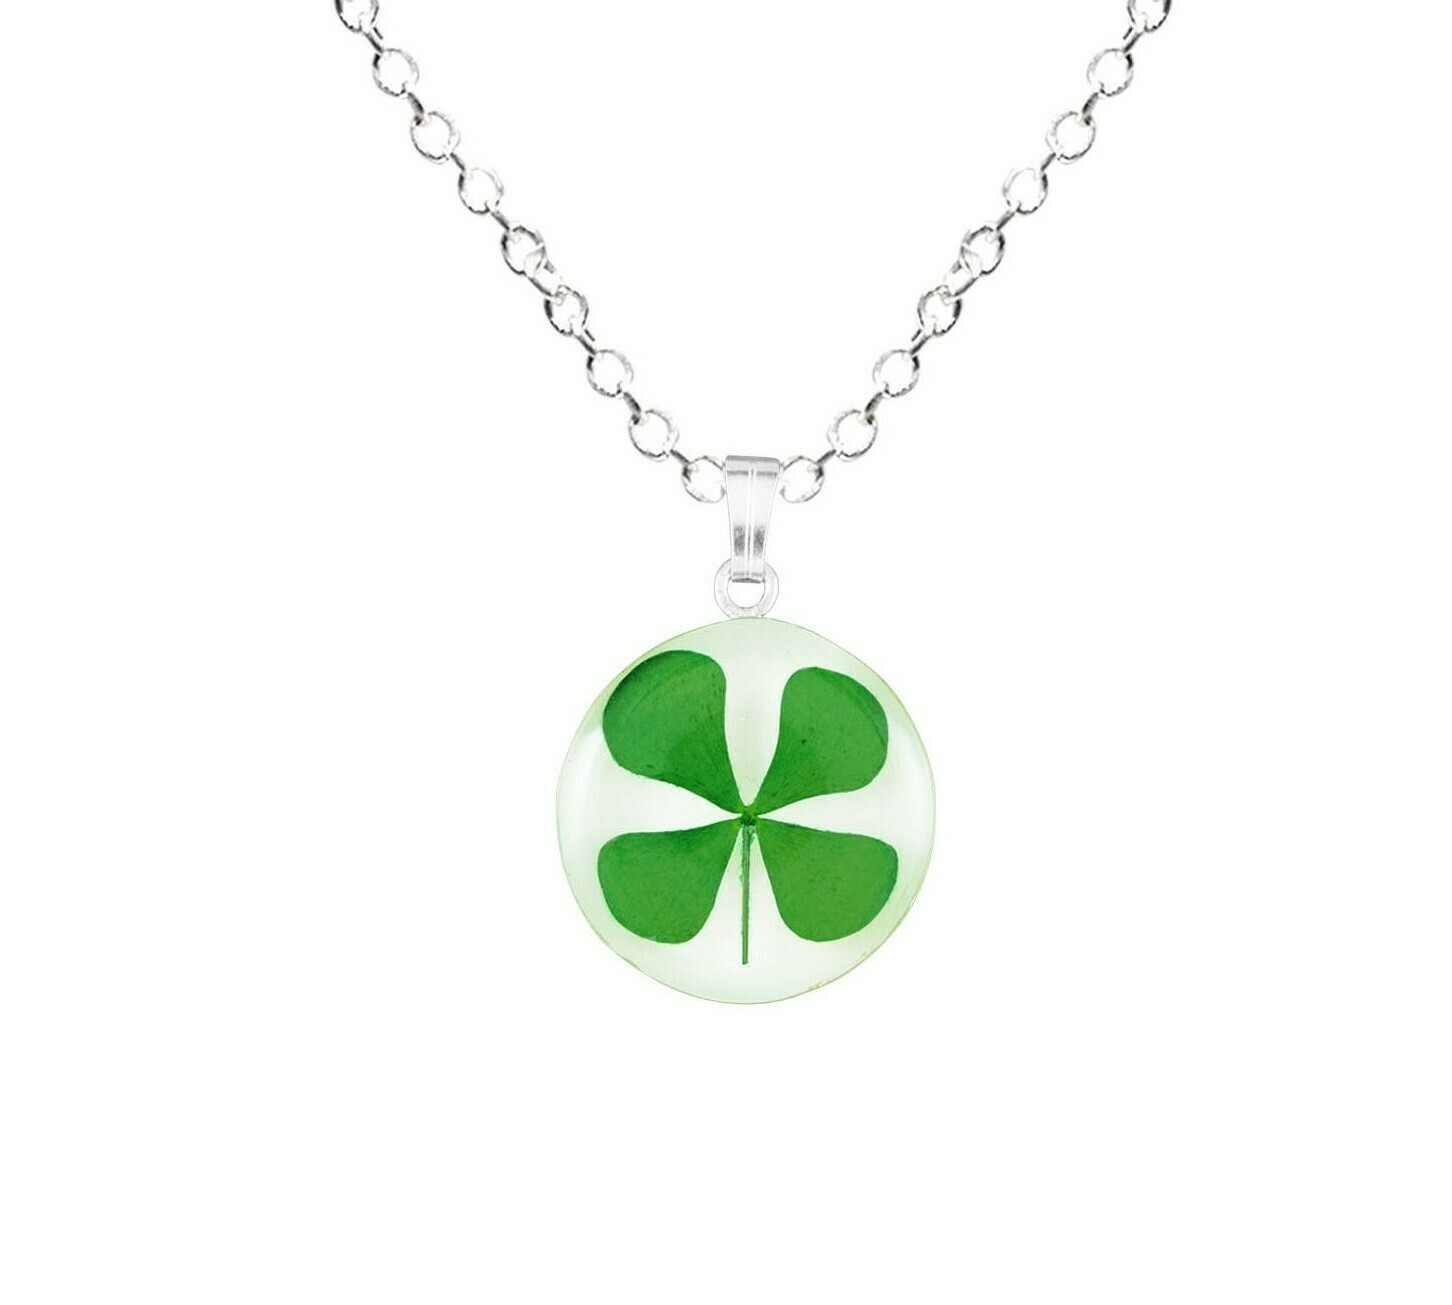 Clover Necklace, Small Circle, White Background